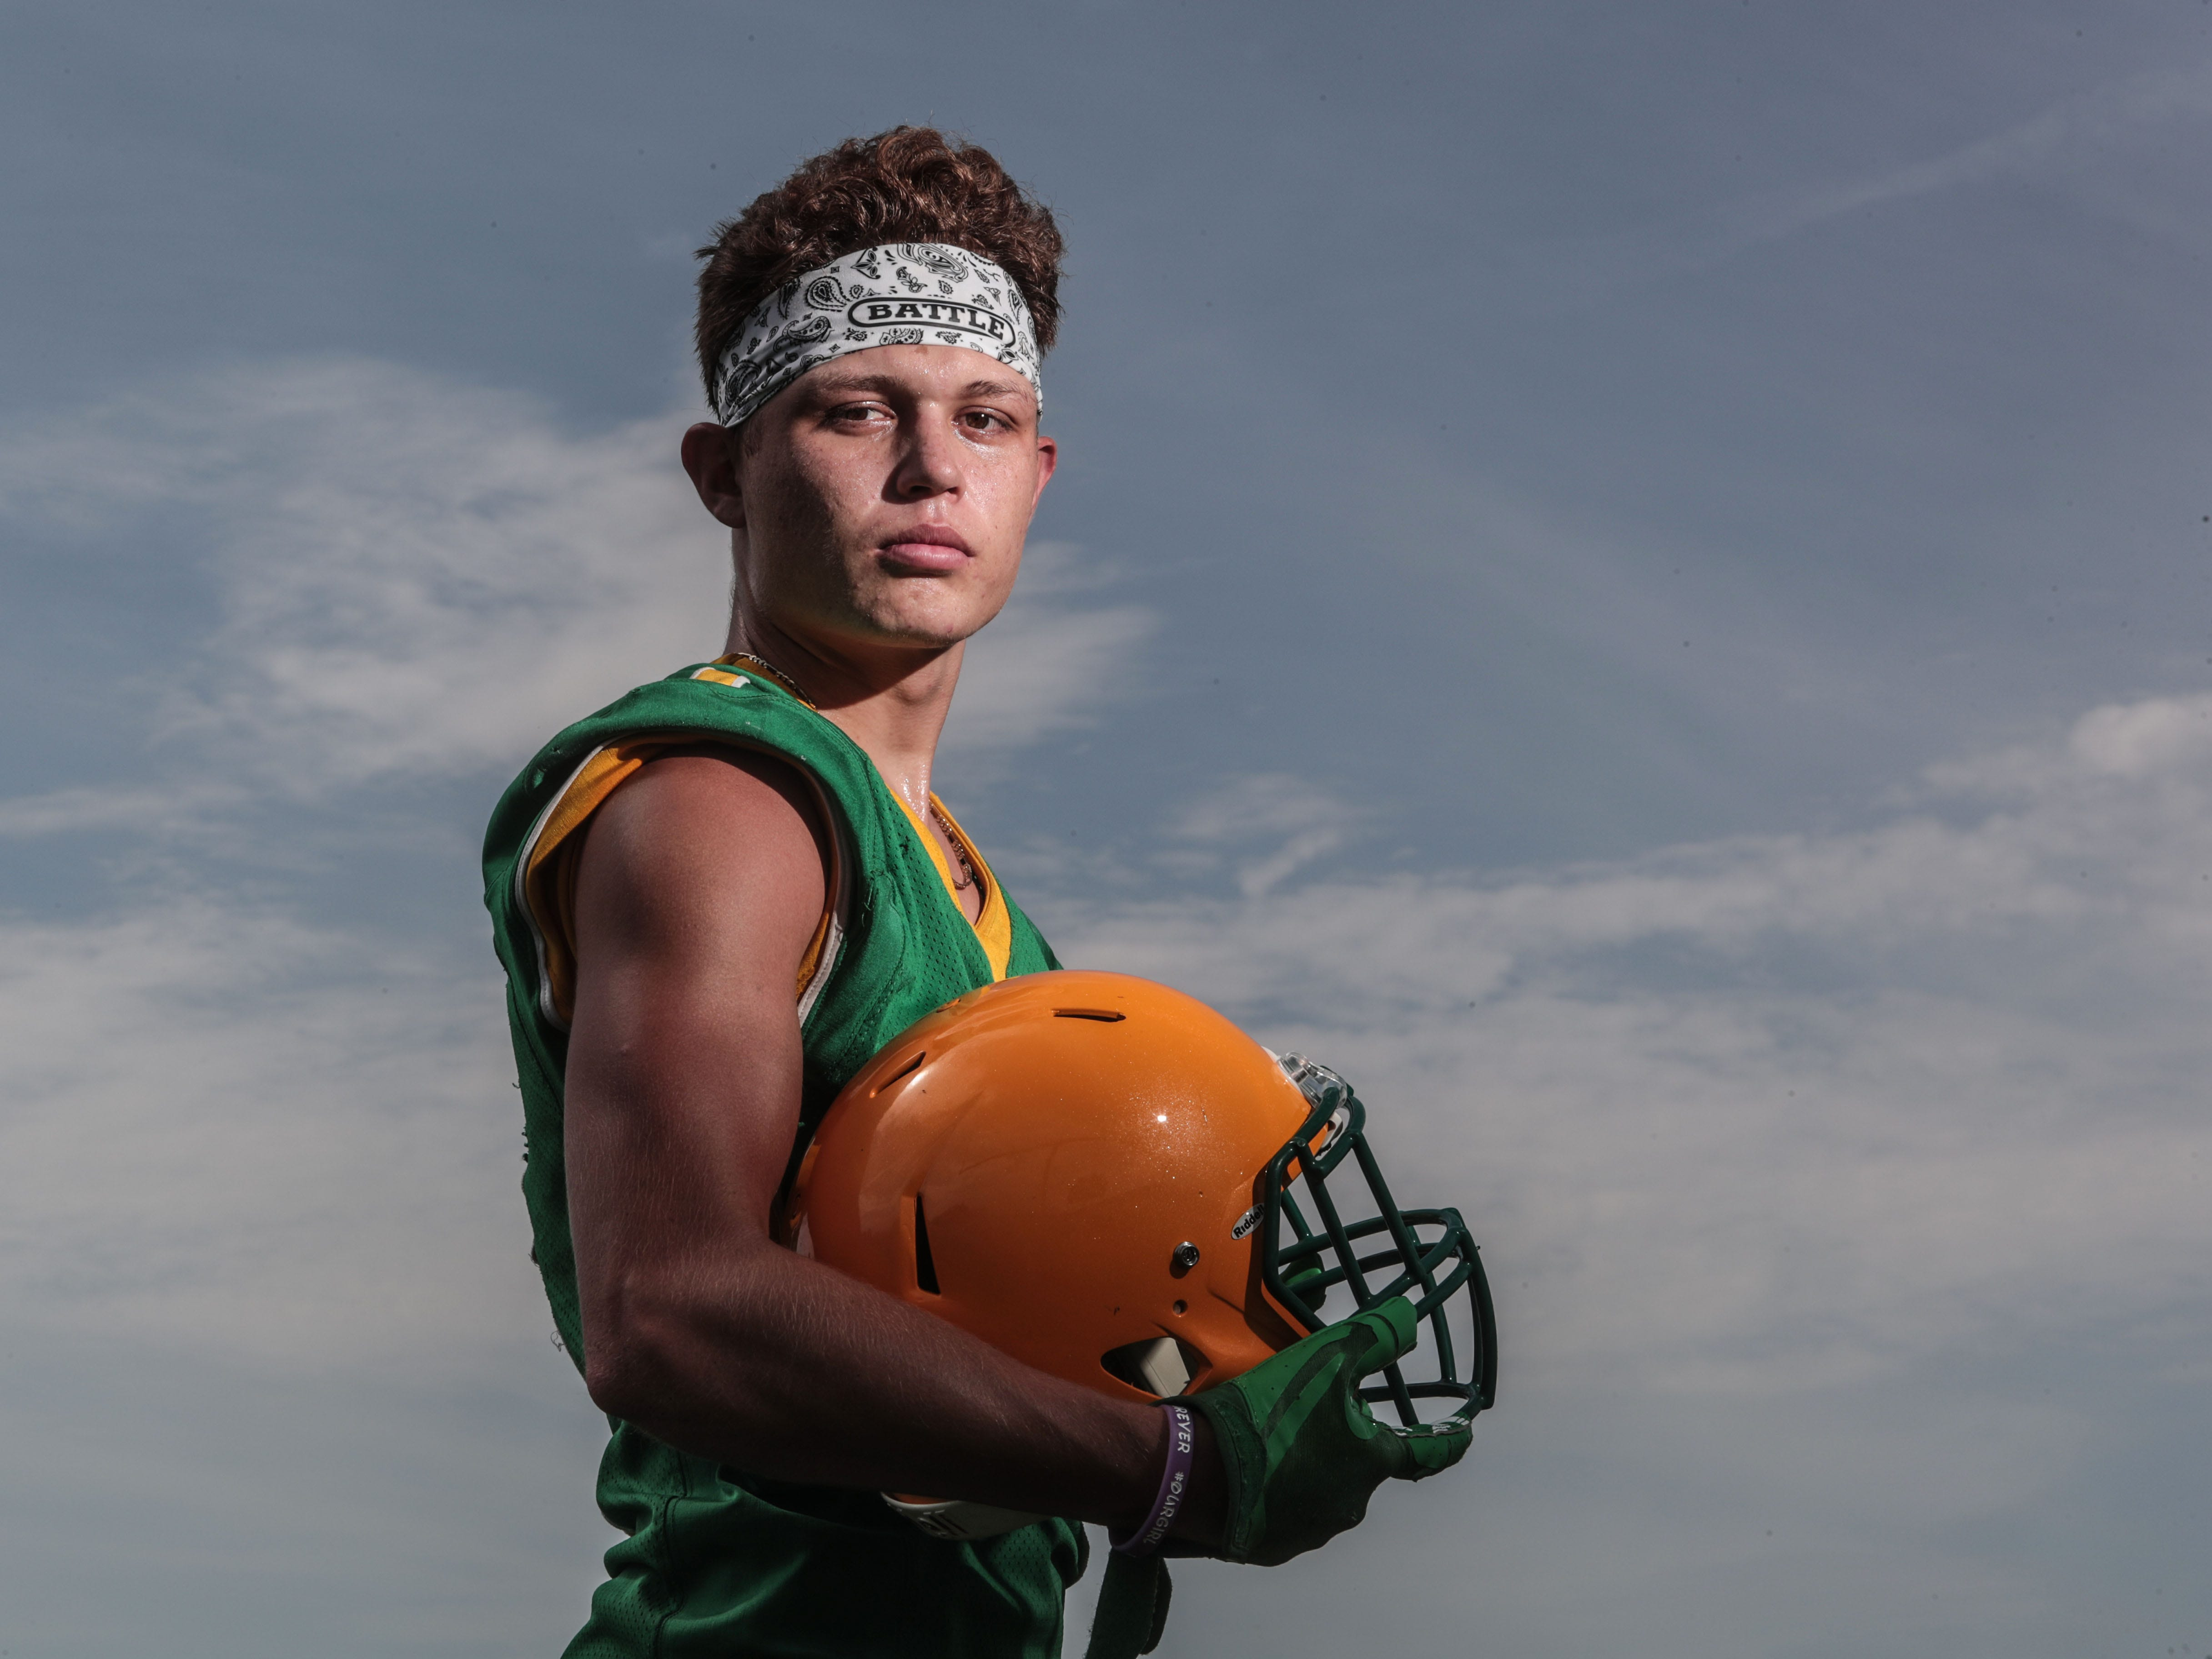 No 3: Angelo Fitzgerald, football player for Coachella Valley High School on Monday, July 30, 2018 in Thermal.